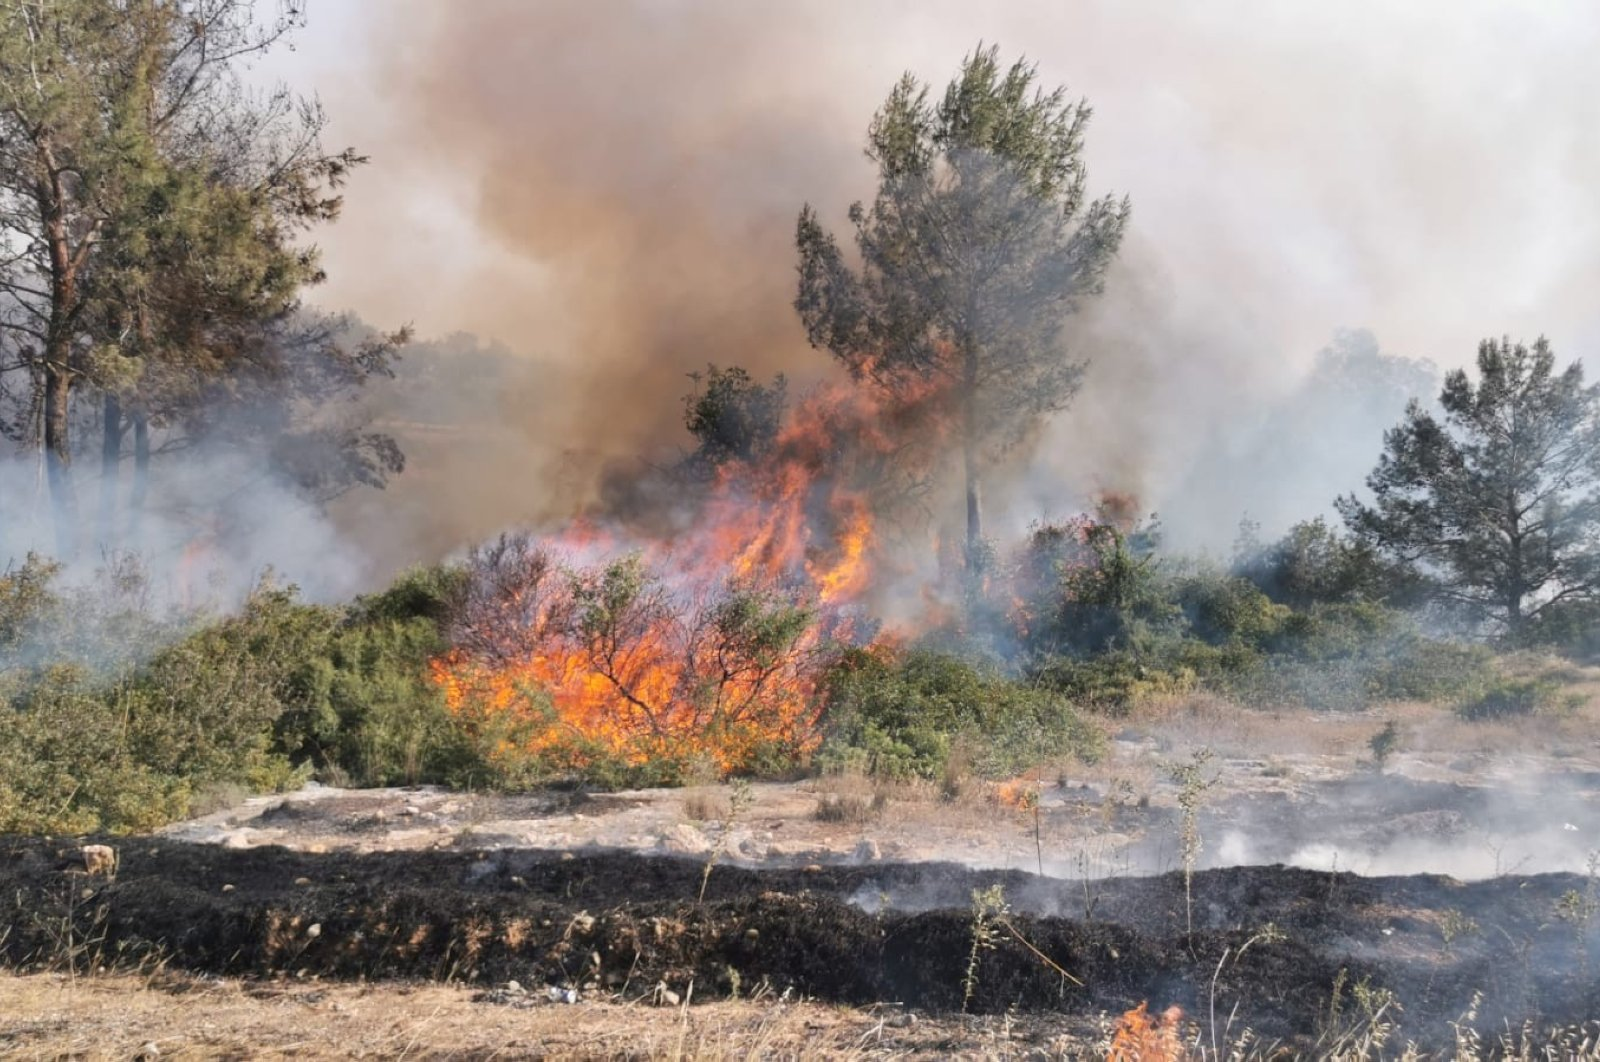 Wildfires burn trees in the Cypriot town of Girne, Turkish Republic of Northern Cyprus, May 17, 2020. (IHA Photo)